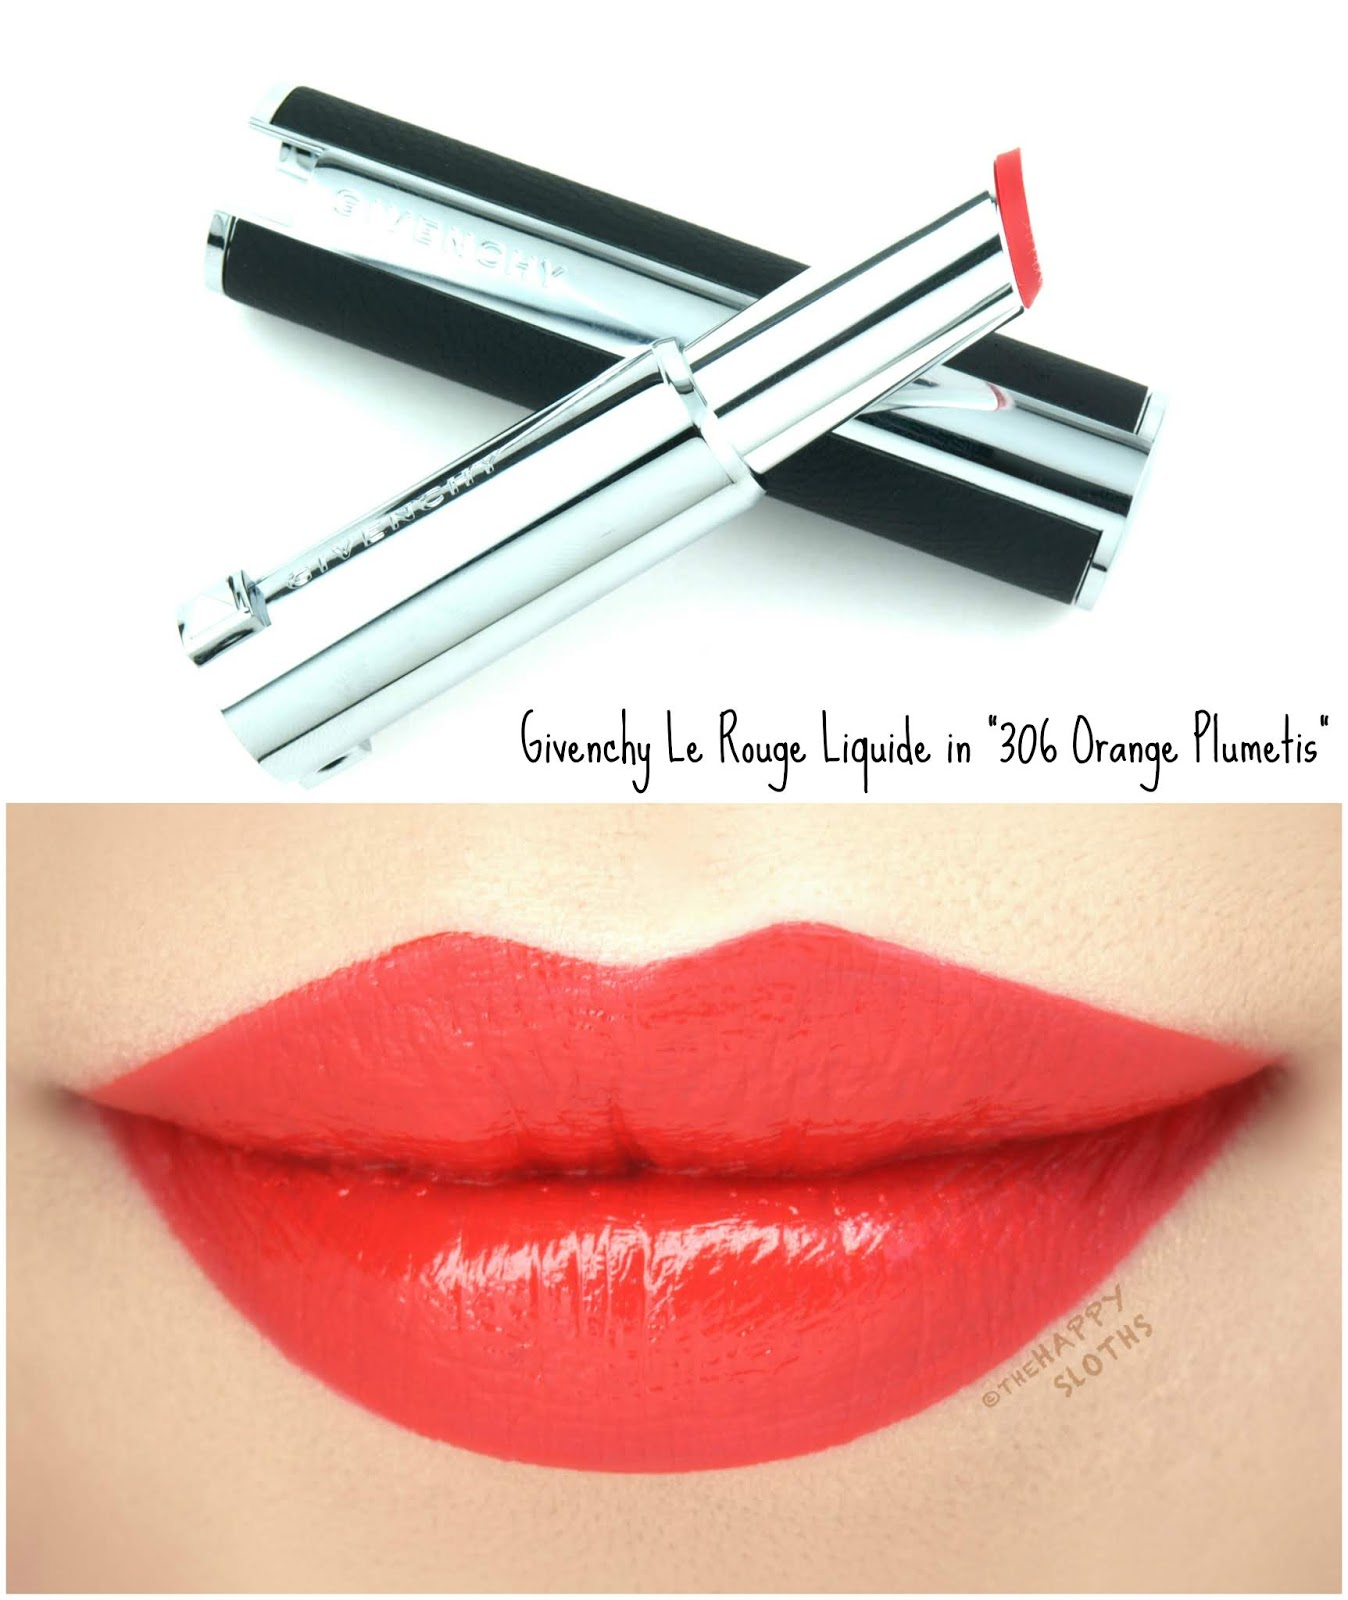 "Givenchy | Le Rouge Liquide in ""306 Orange Plumetis"": Review and Swatches"